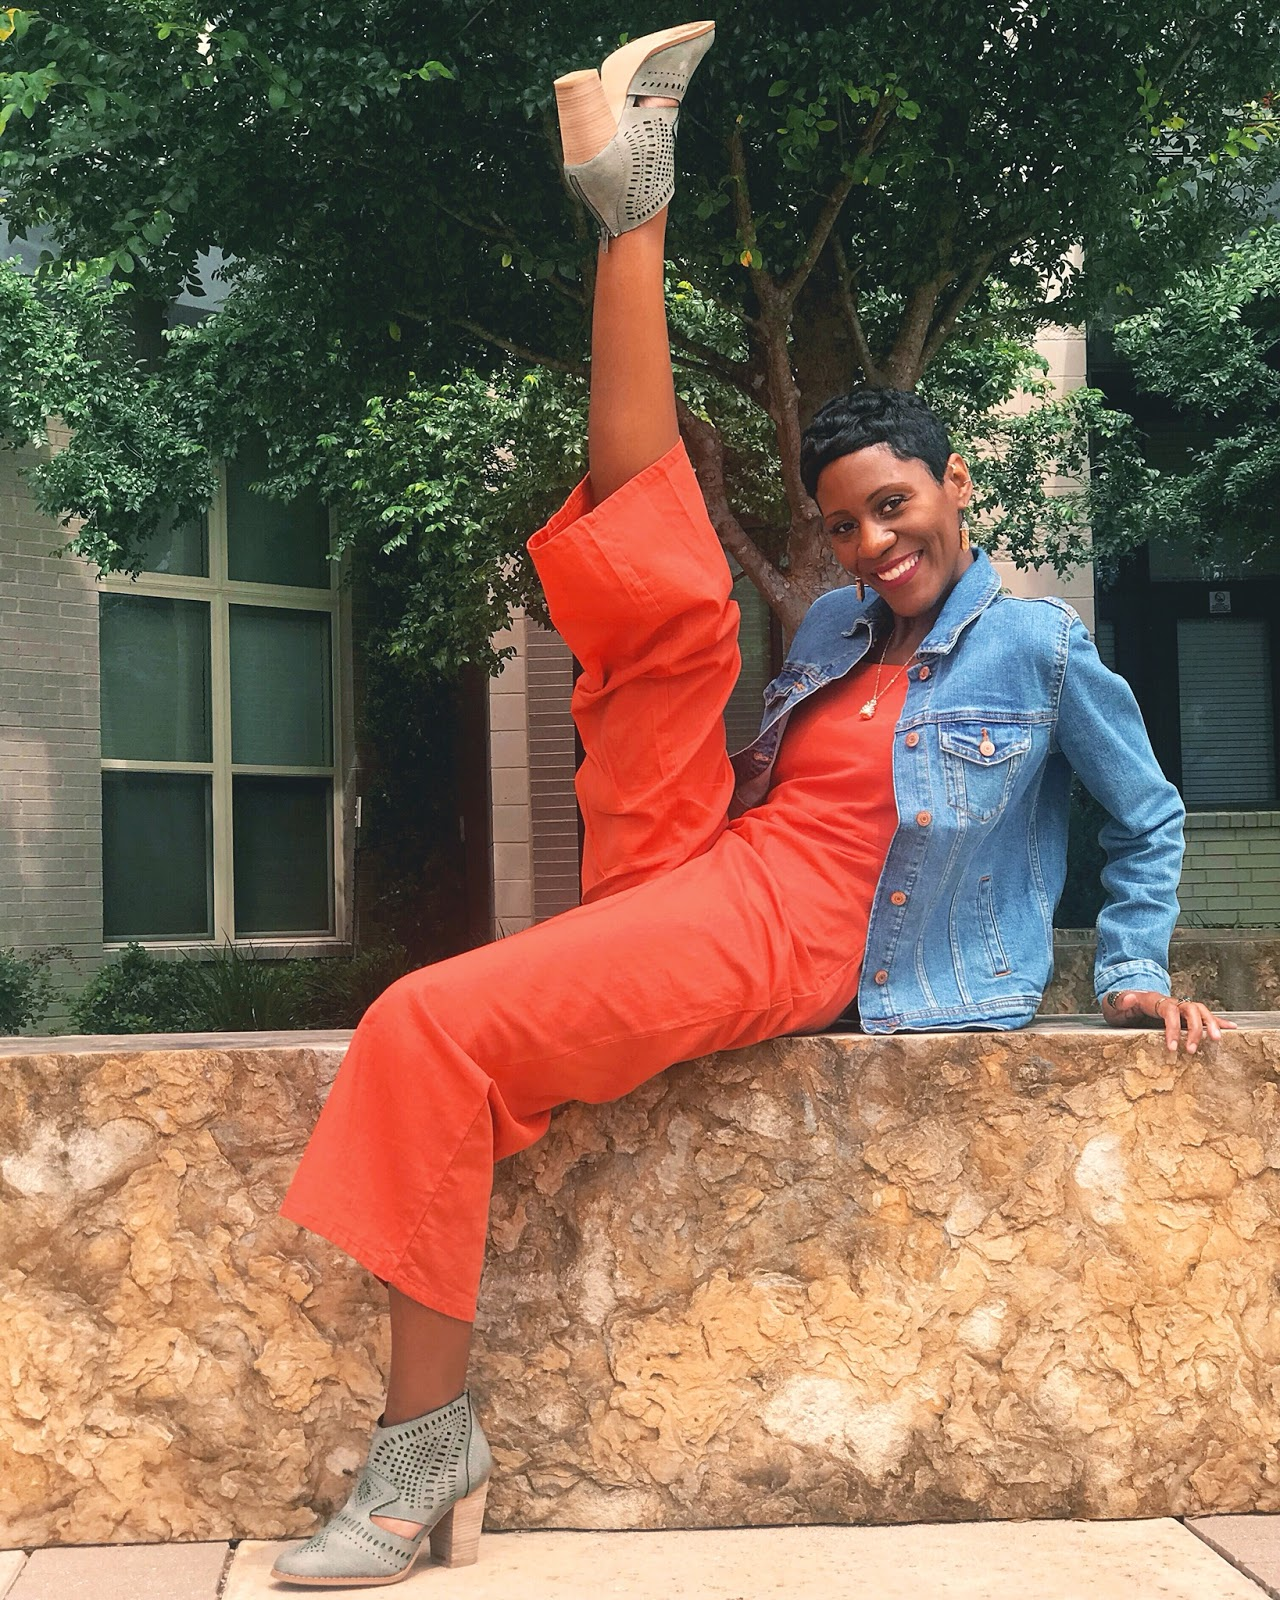 The Perfect Orange Jumpsuit For Dancers In The Summertime